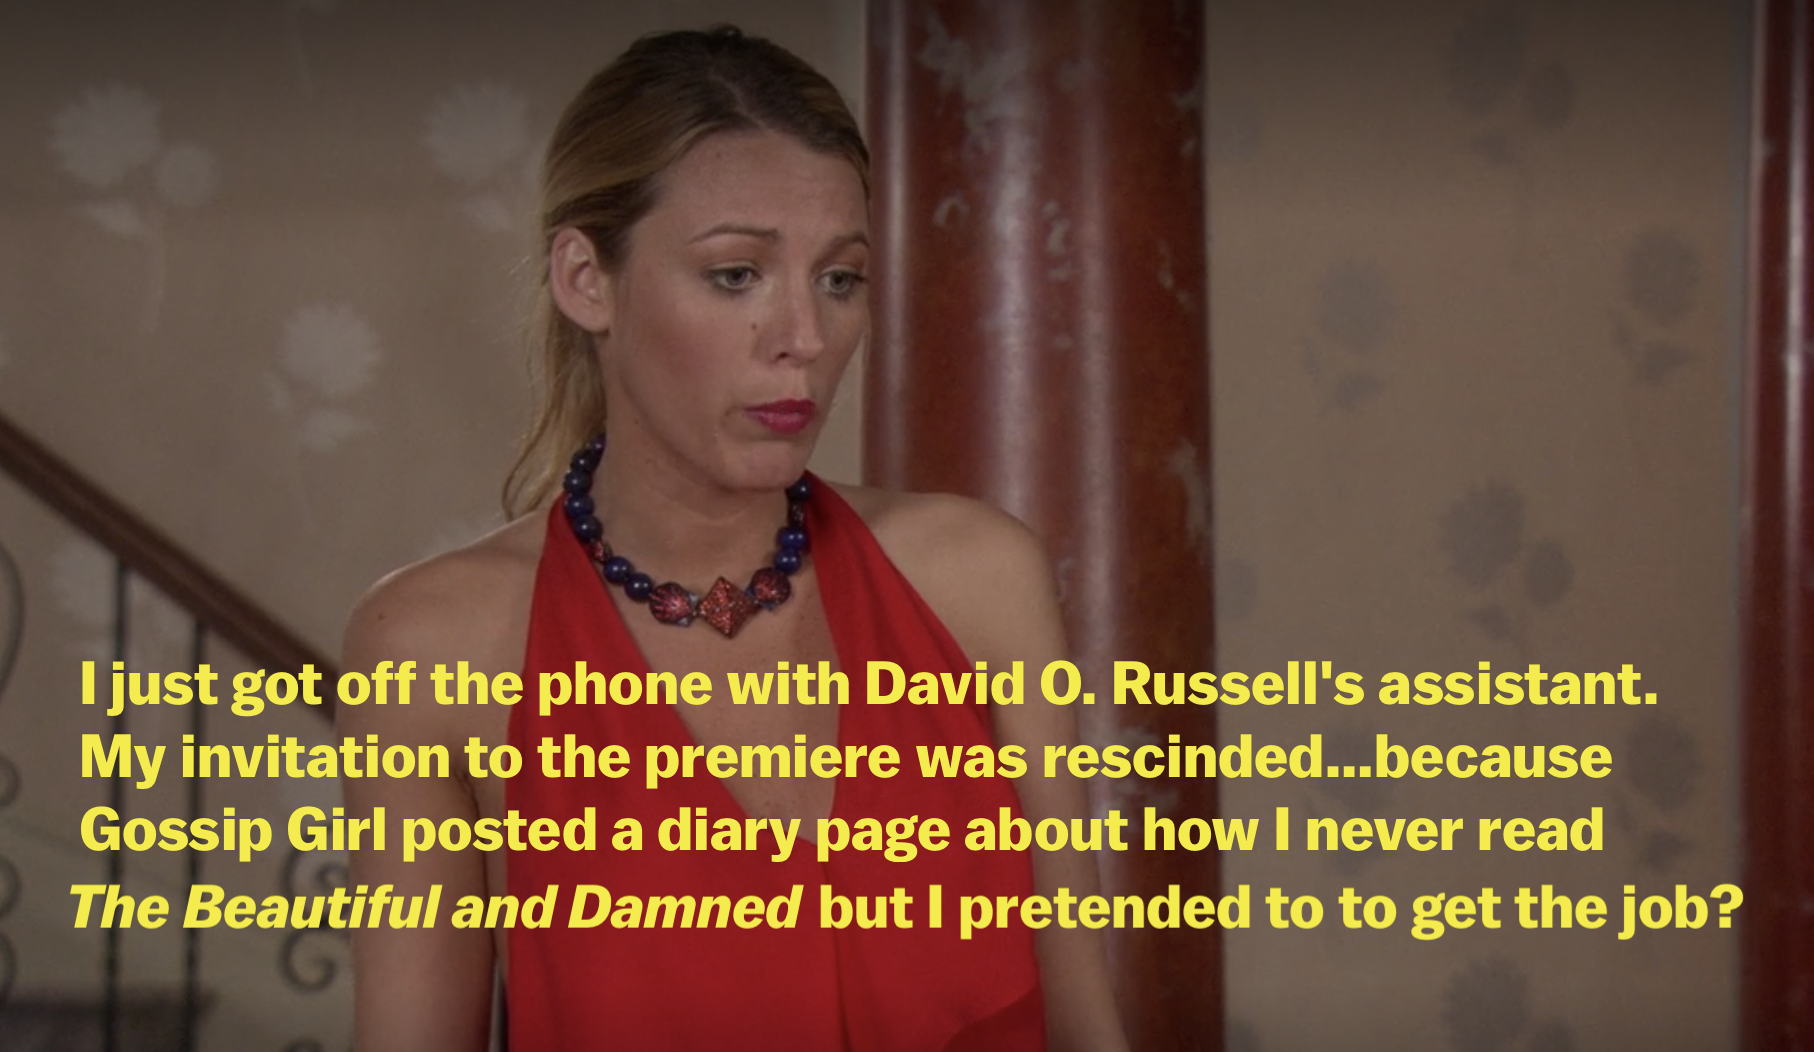 Serena saying her invitation to a premiere was cancelled because Gossip Girl posted a diary entry where Blair said she was a liar